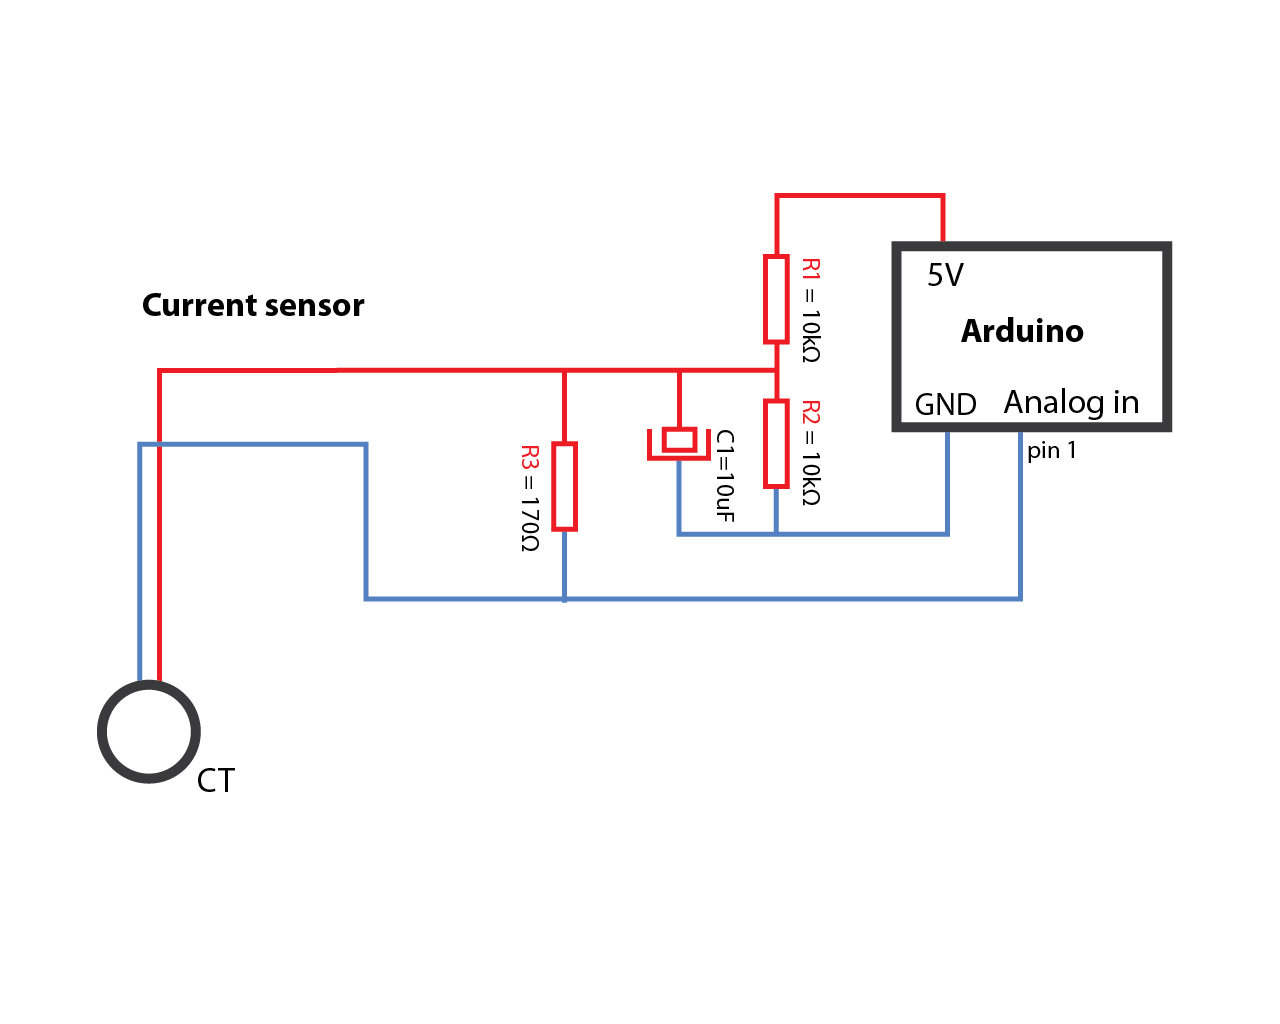 Rittal 31100 Wiring Diagram also Isoxfmr moreover How To Step Down 230vac To 24vdc furthermore Elecy3 22 additionally Team Recurse blogspot. on step down transformer wiring